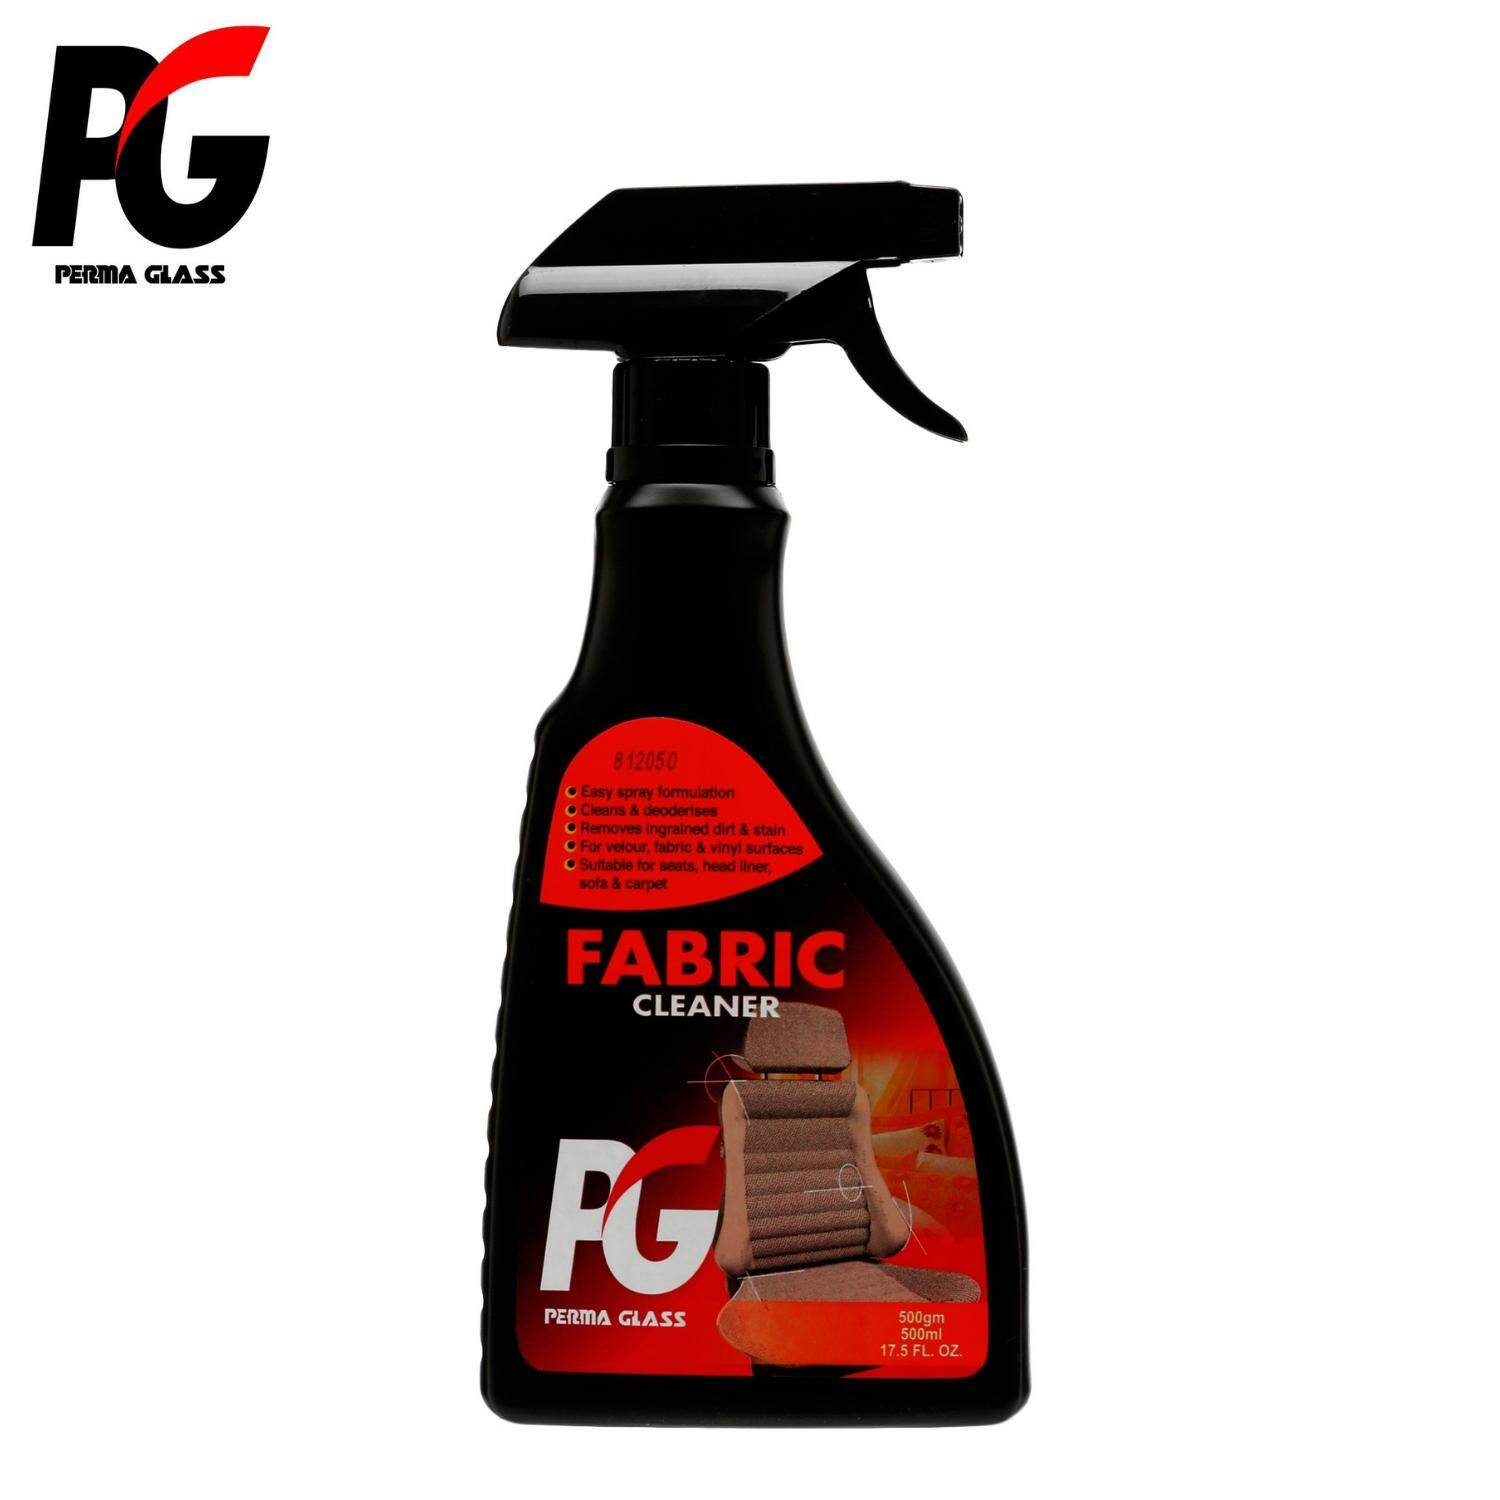 PG FABRIC CLEANER  (500ML)  - Suitable For Cars and Household Fabric